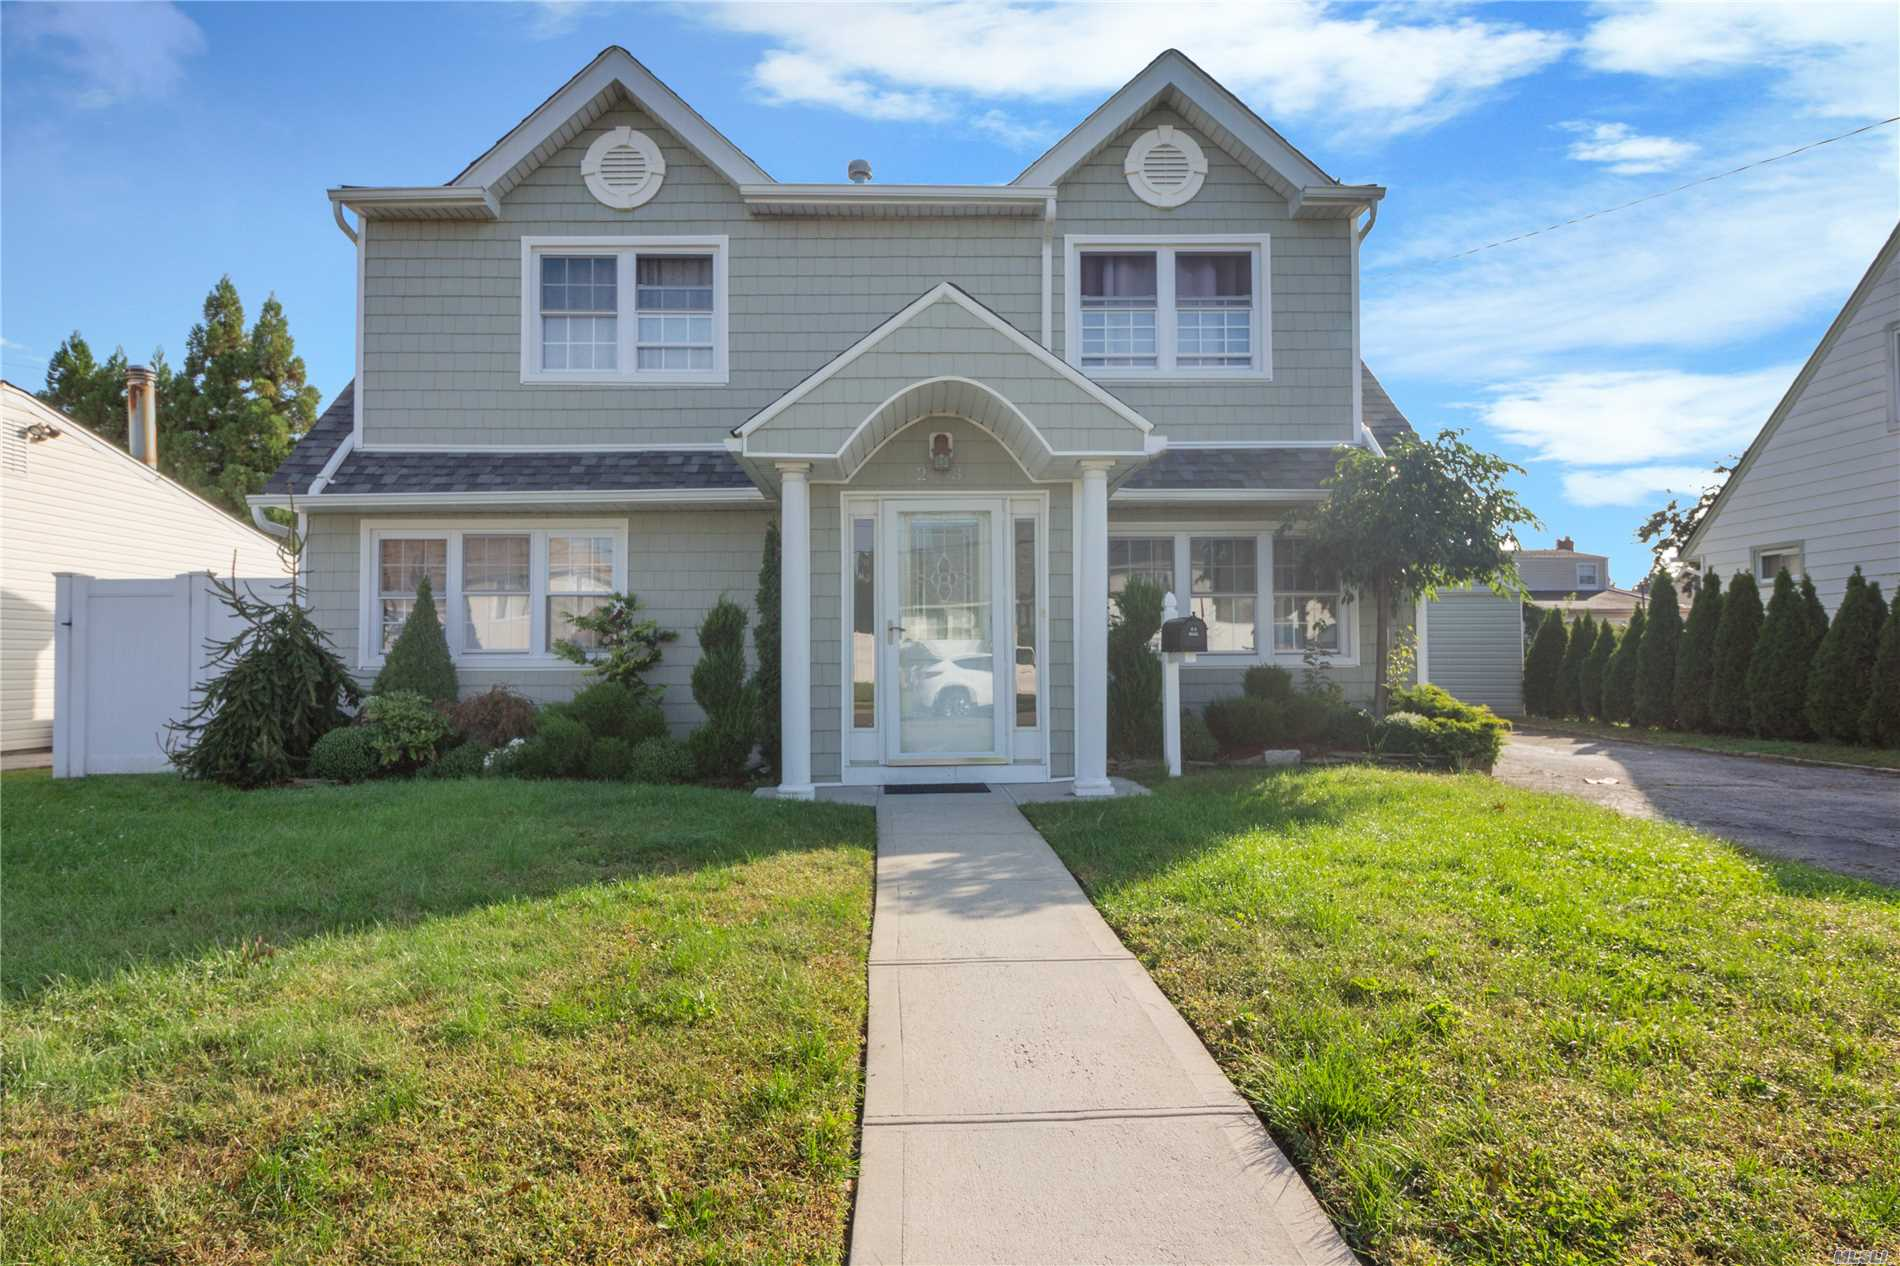 Impressive & Expanded 2200 Sq Ft. Colonial, Renovated (5 Yrs )! Granite Kitchen Open To Den W/French Doors & Gas Fpl.. Gleaming Hw Floors & Crown Molding. Nest System. Brand New Rheem Hw Tank. King Master W/Lg Wic, 2 Closets & Space For Office Or Expansion. Nice Size Bdrms. Ceiling Fans, Whole House H2O Filtration System. Plenty Of Storage. Lrge 2Yr Old Trex Deck For Entertaining. Fully Fenced. Gas/Cac. Lakeside/Jfk Hs. Taxes Being Greived. Just Move In!!!